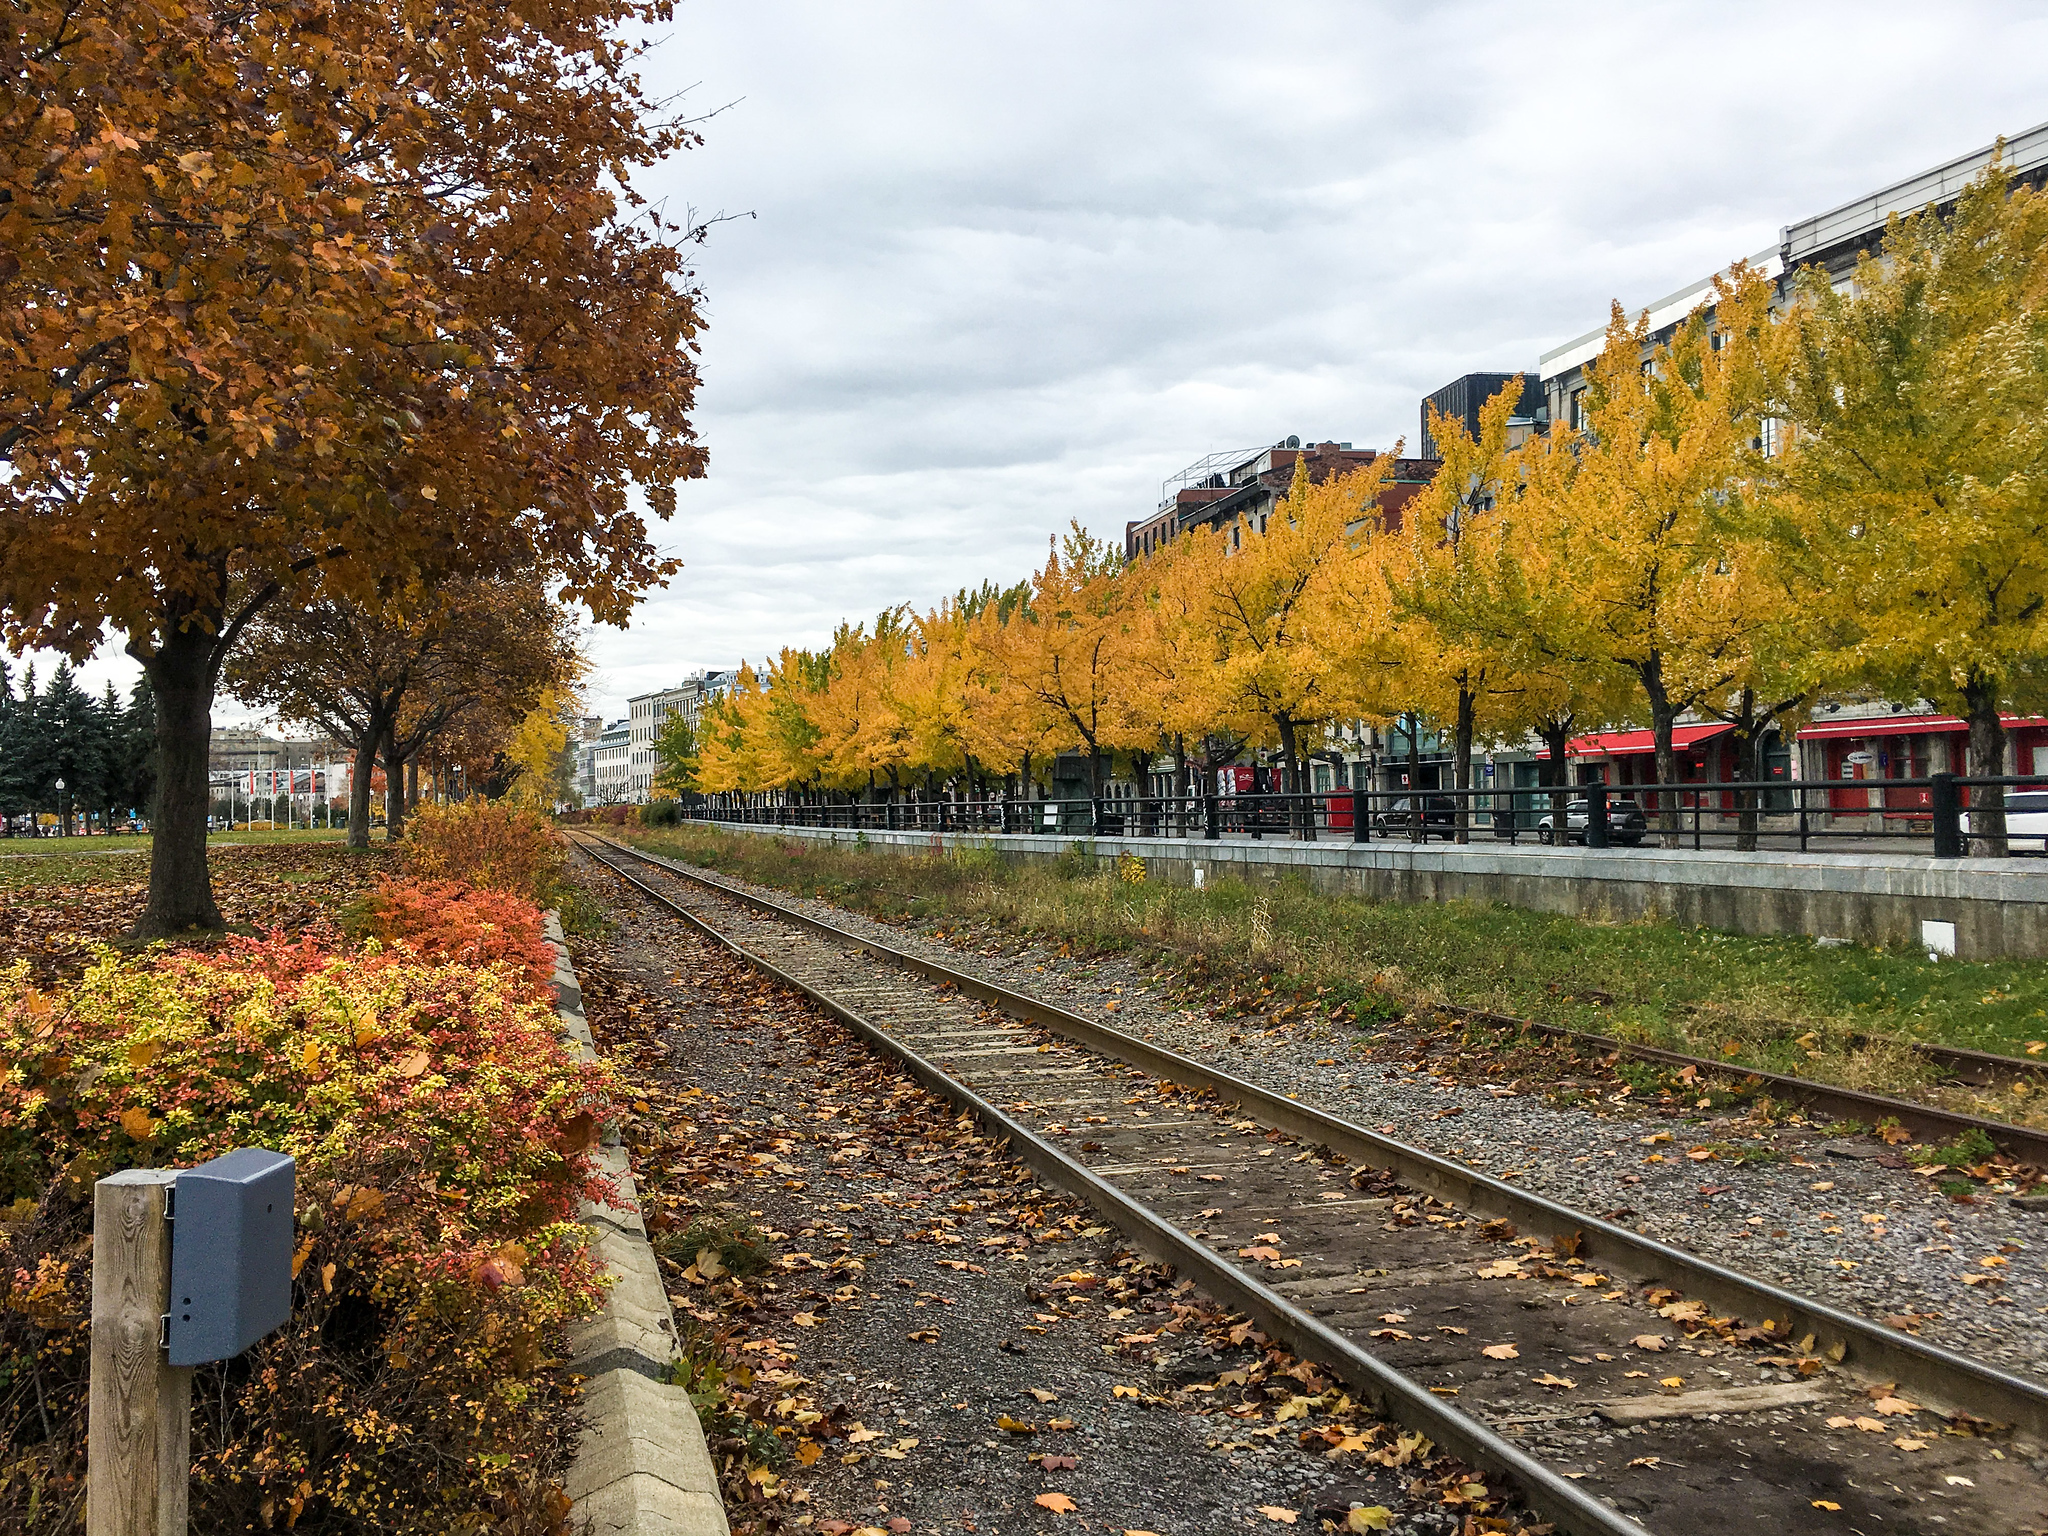 bundle up on your solo trip to montreal - even in fall